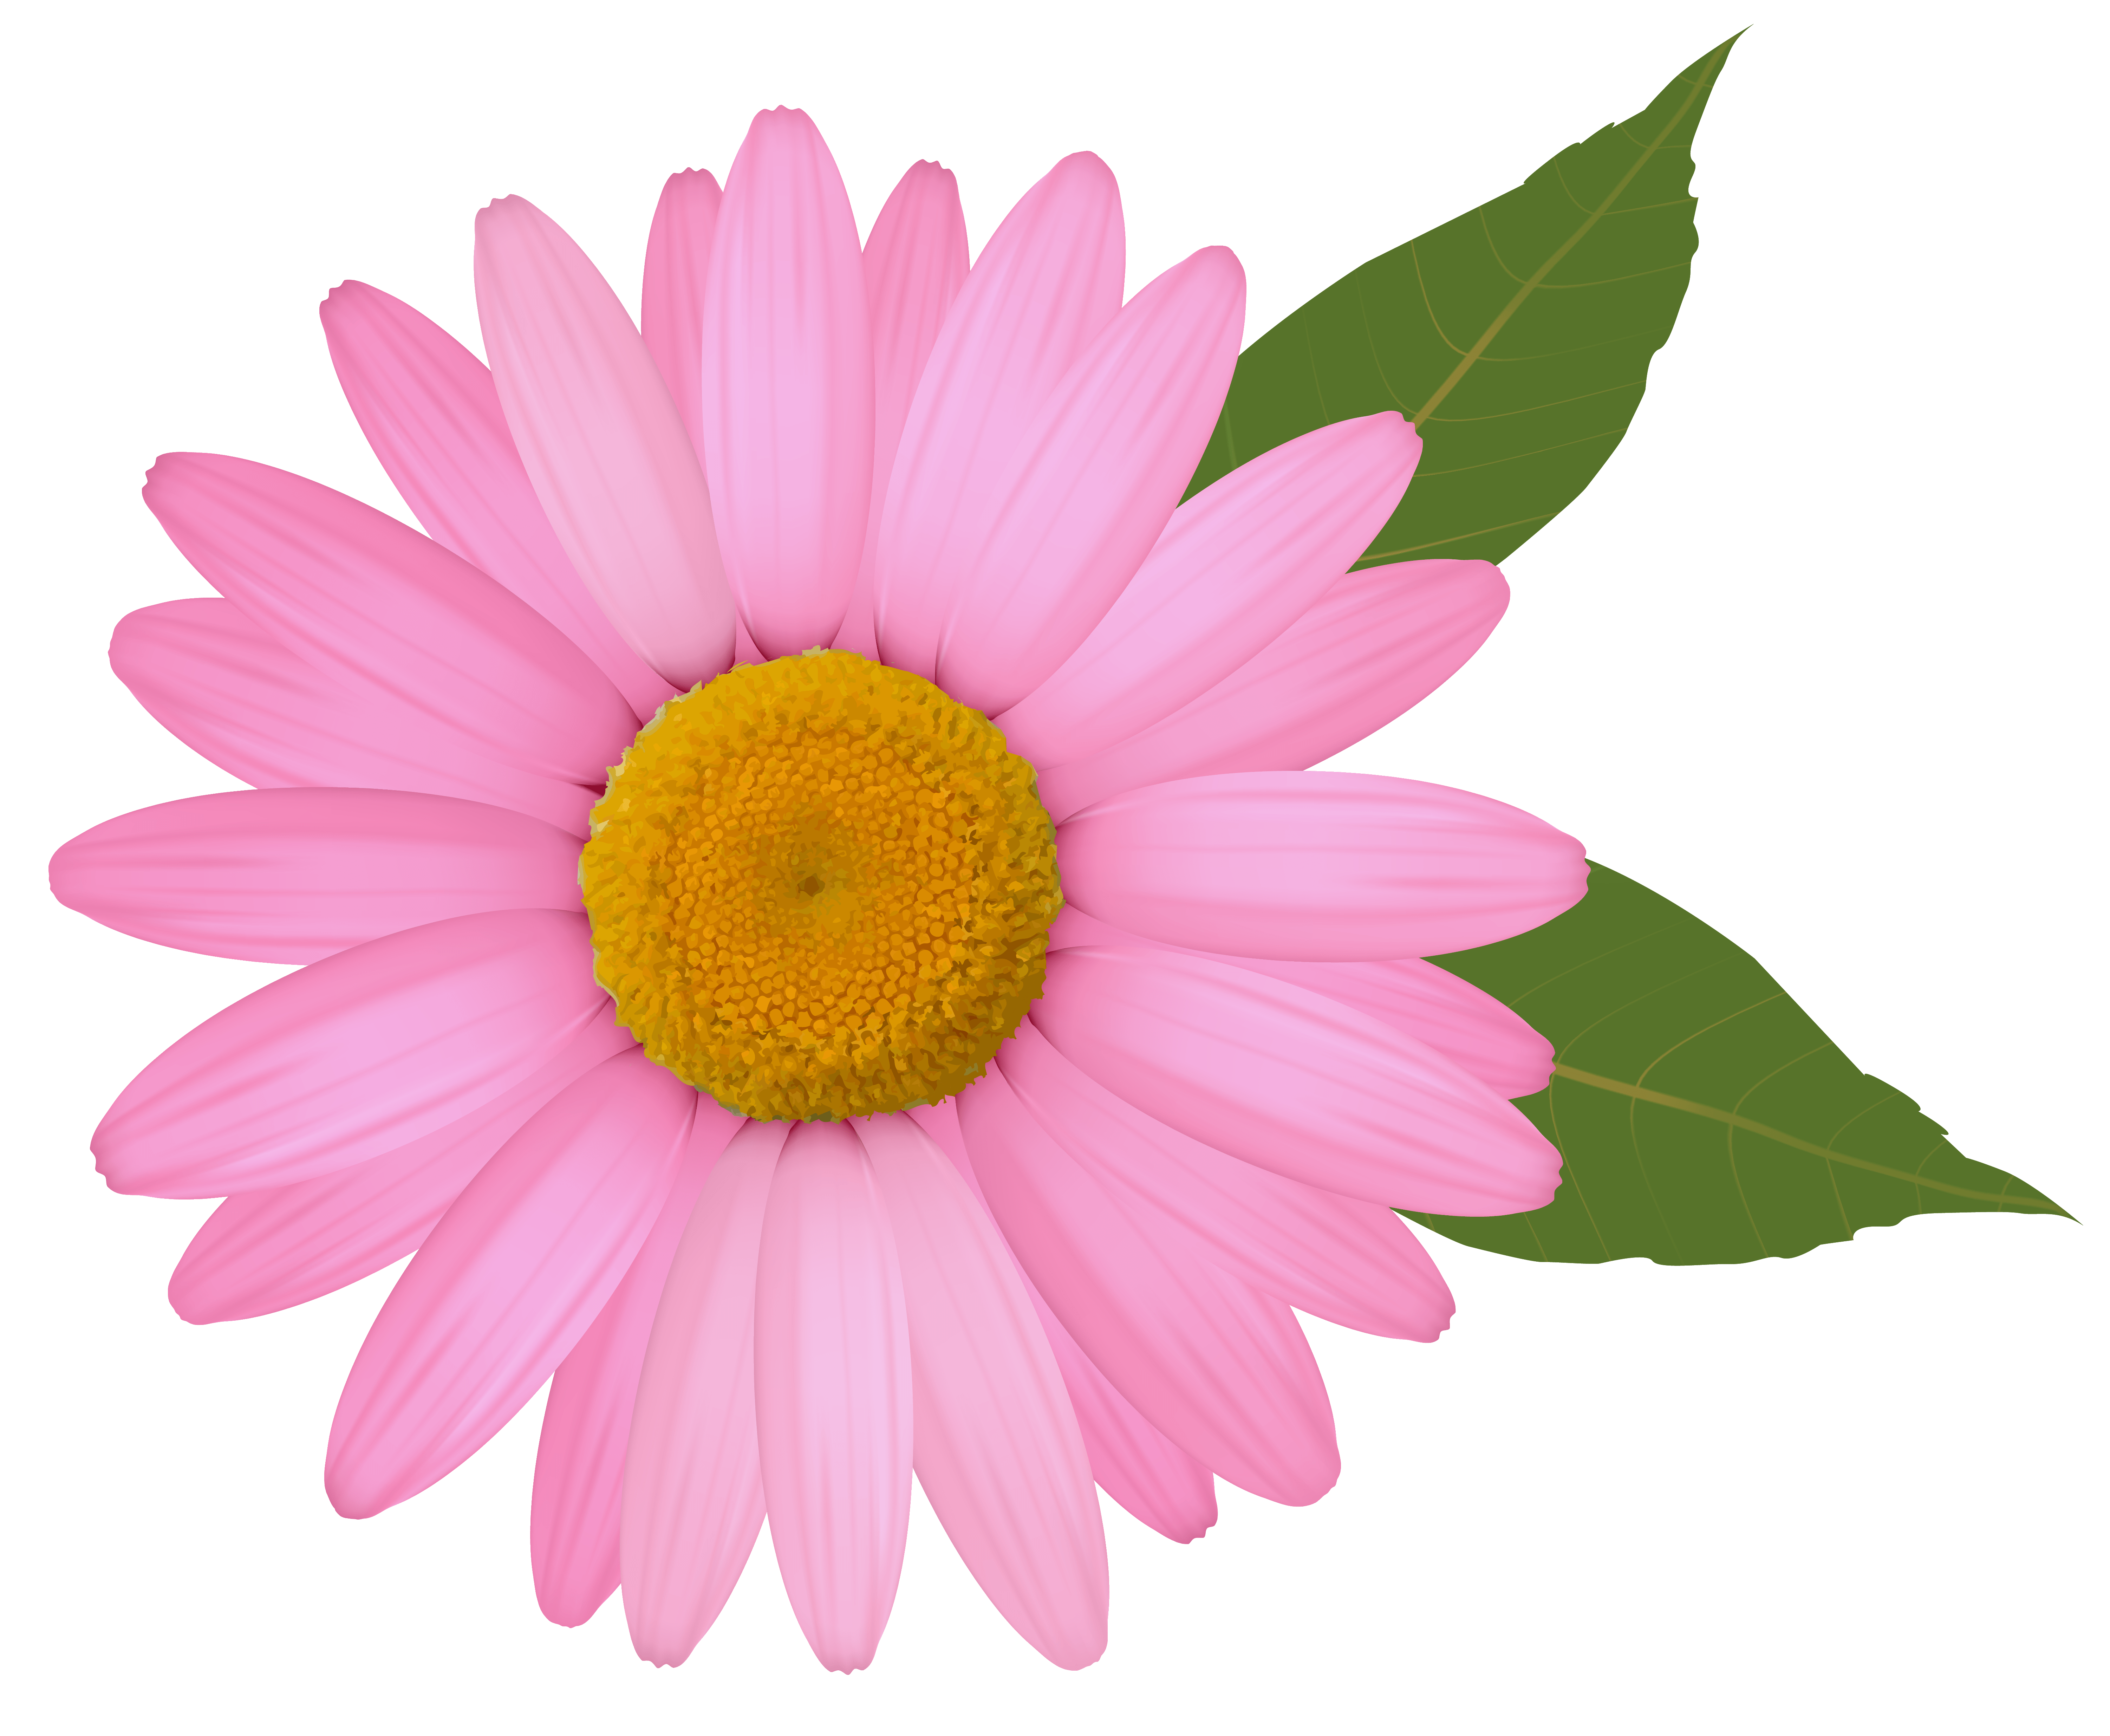 medium resolution of pink daisy png clipart image